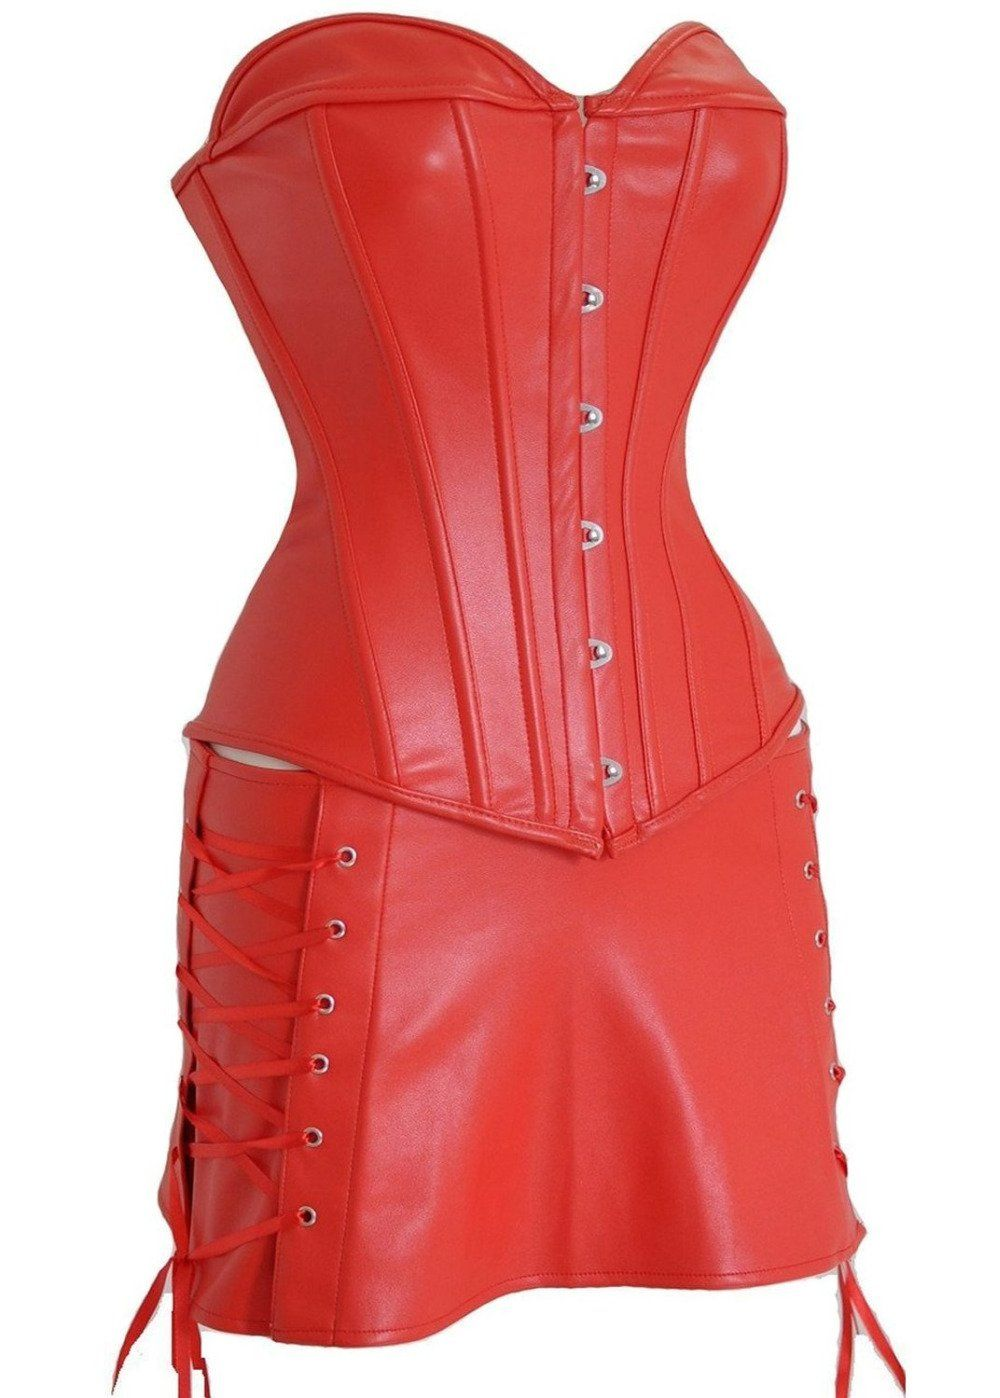 08c6dbaeb3 Drag Xena Corset Dress - The Drag Queen Closet